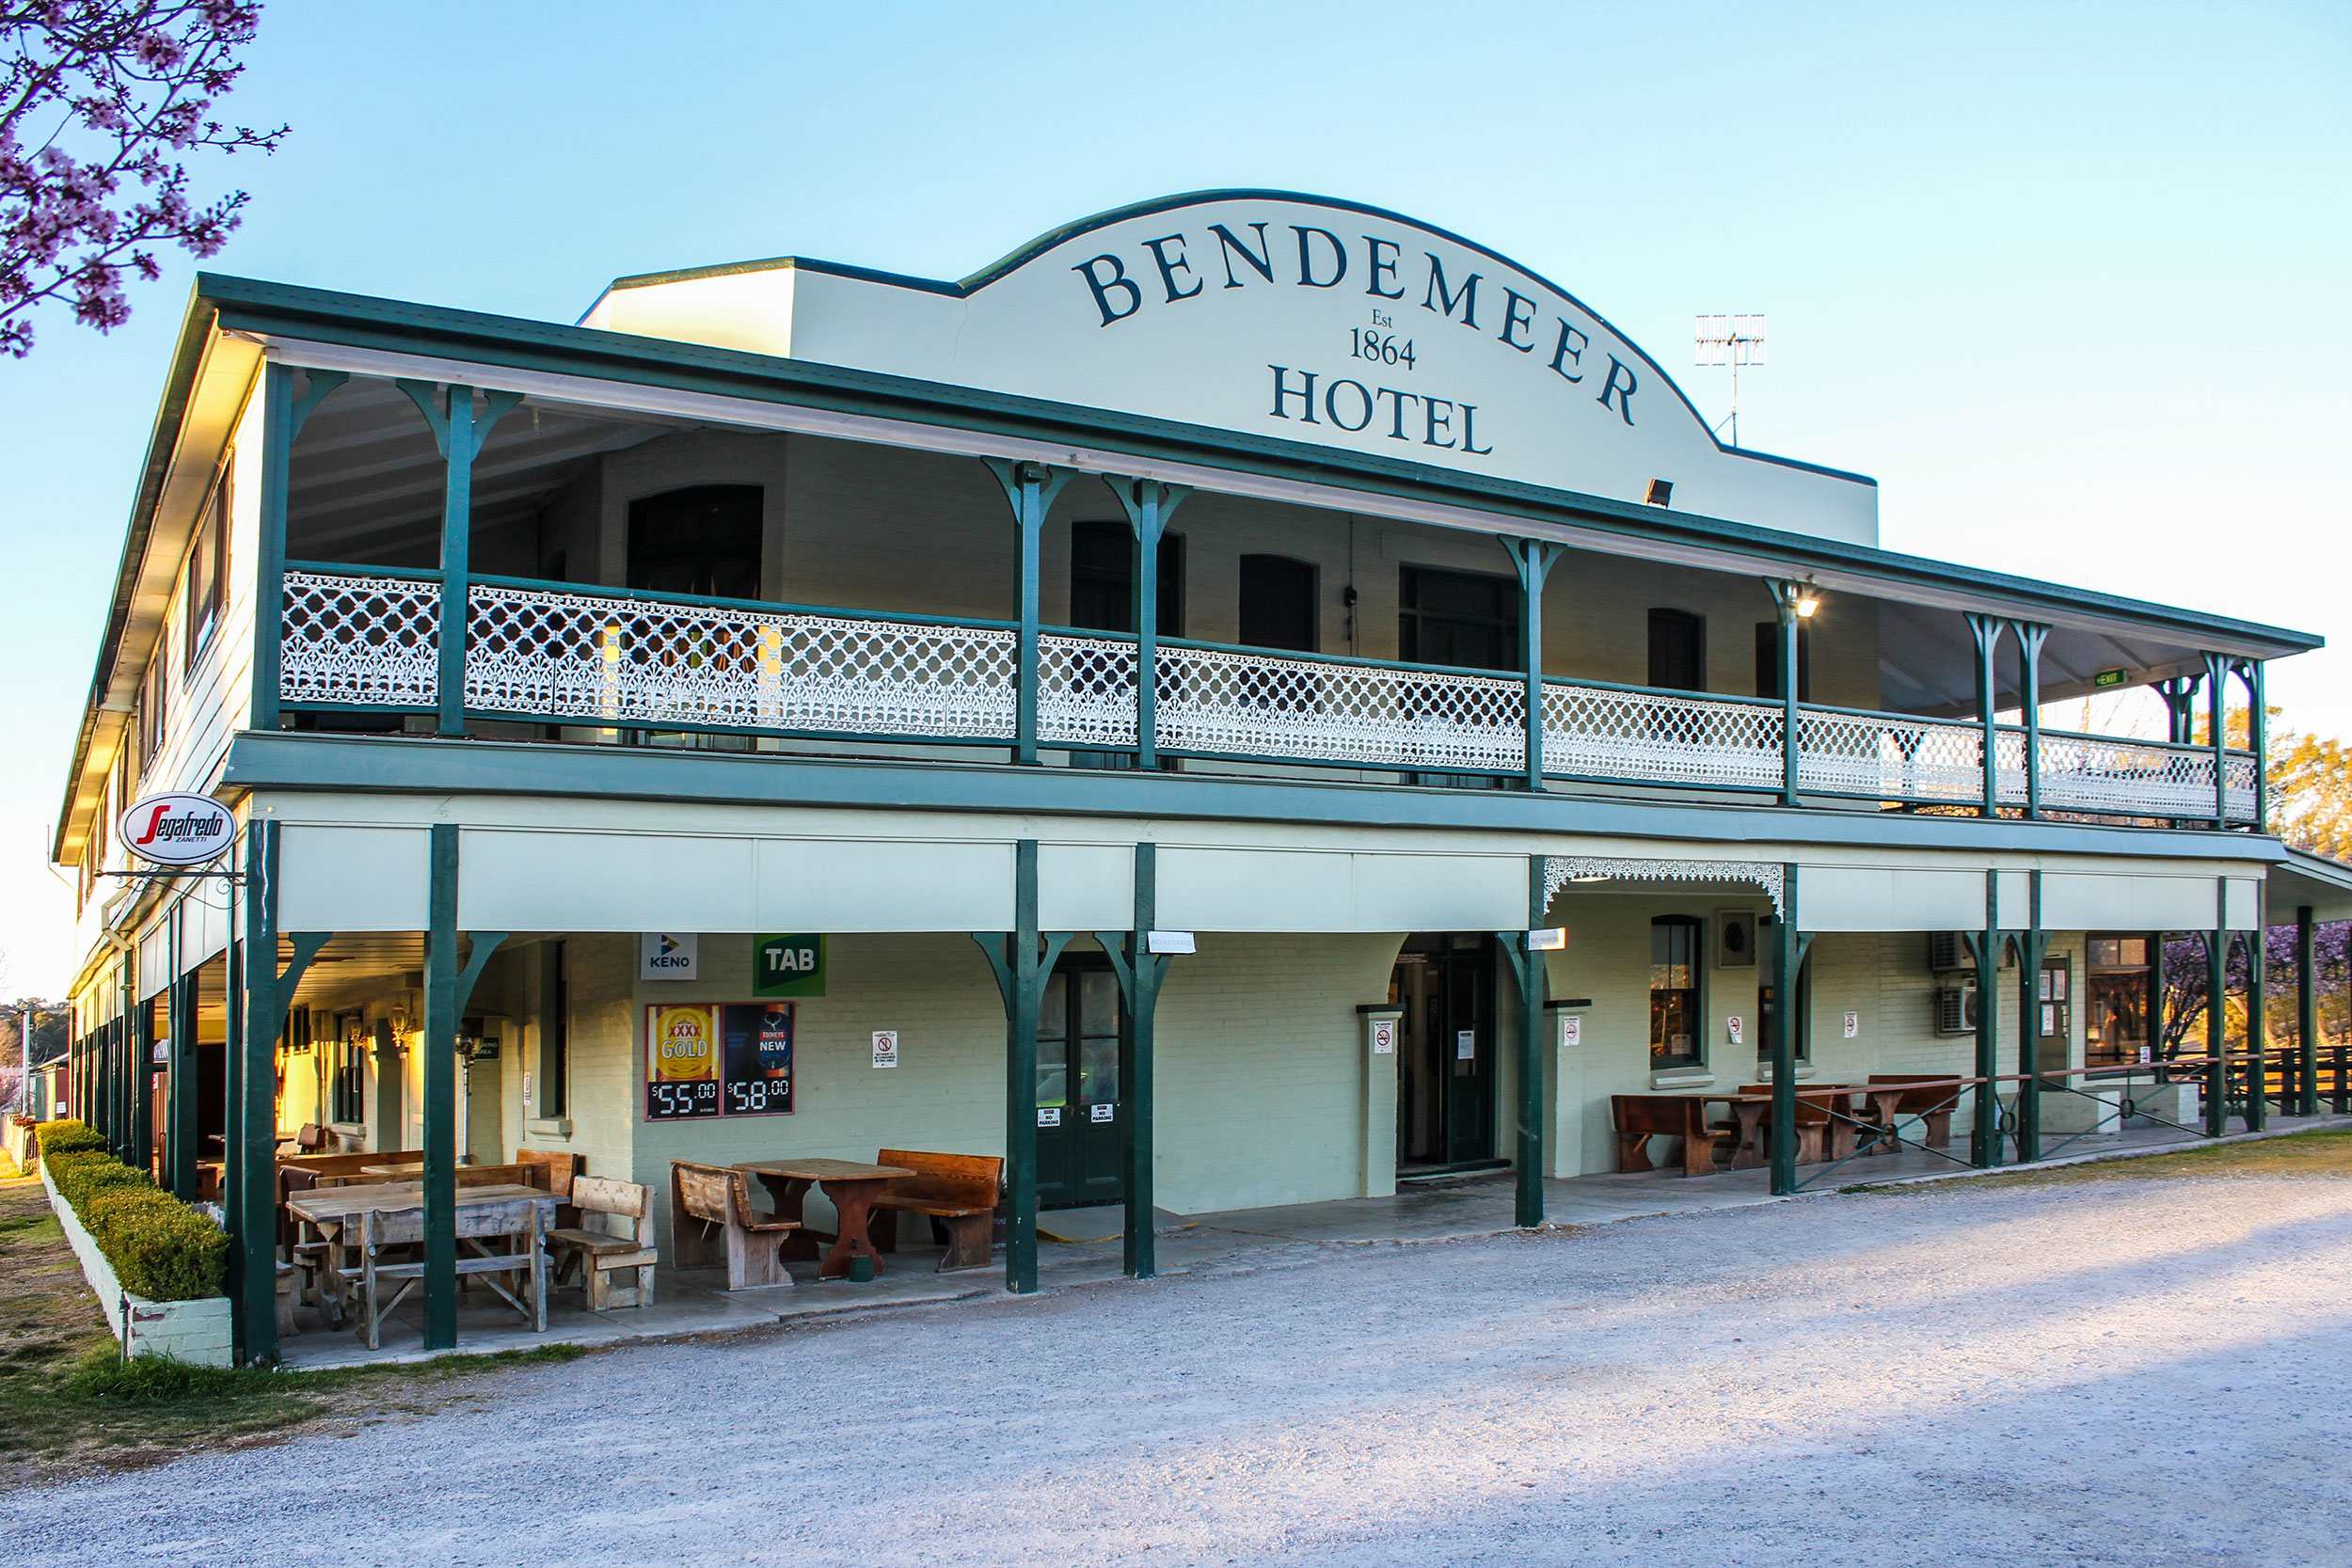 Name : Bendemeer Hotel - Bendemeer, NSW